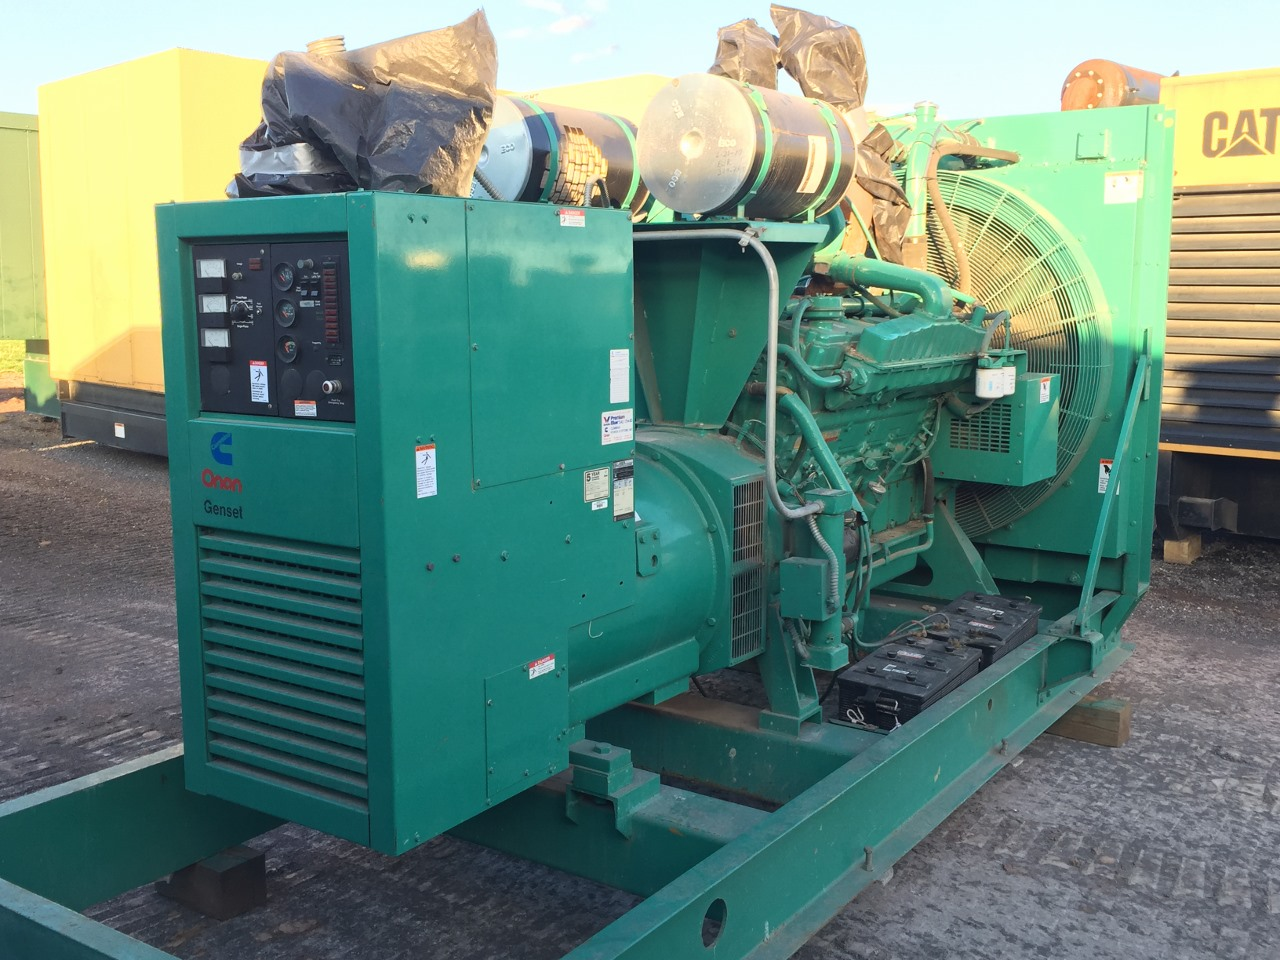 600 Kw Cummins Generator  12 Lead Reconnectable  480 Volt  1  3 Phase